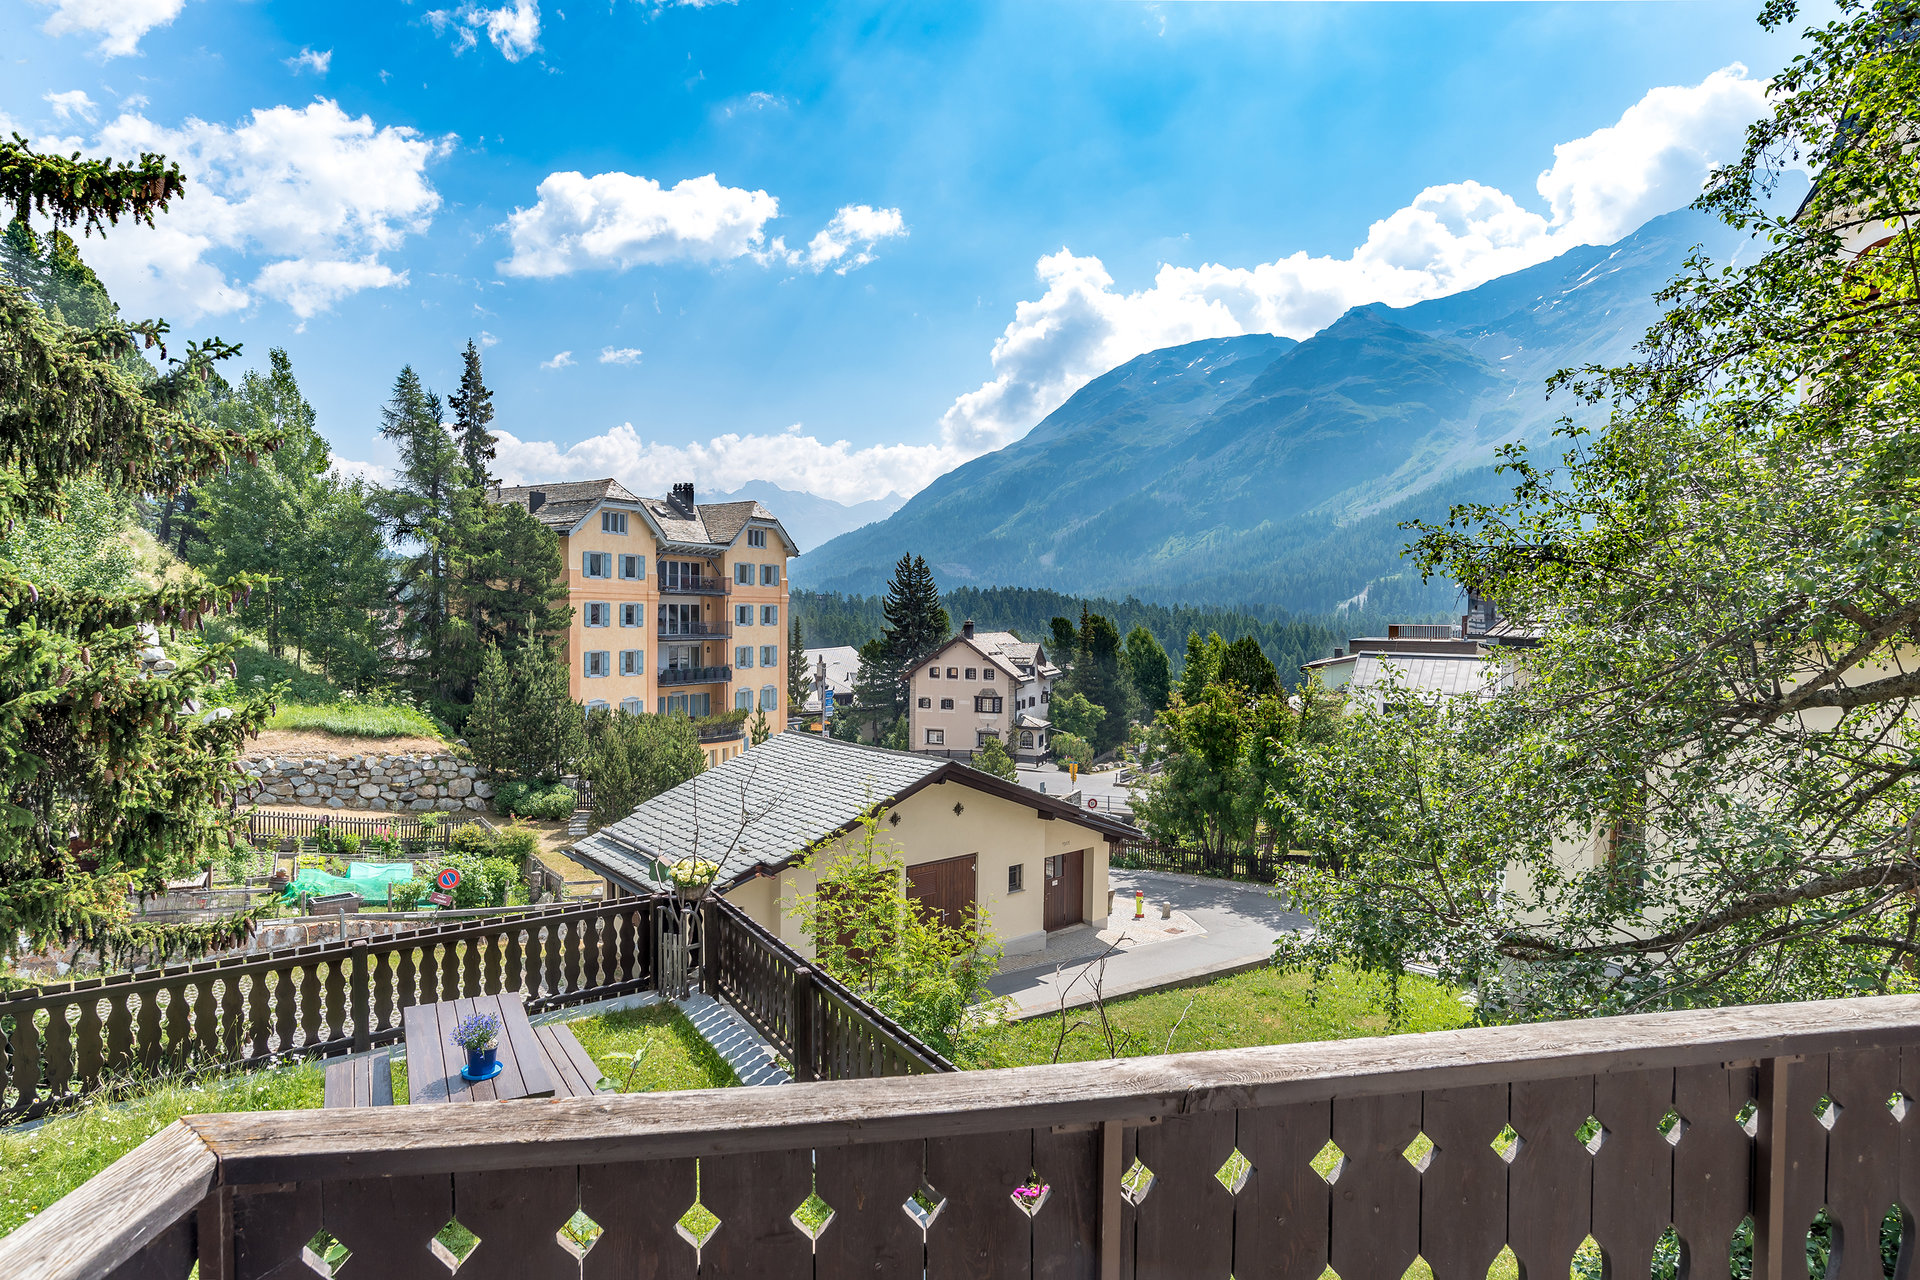 Holiday apartment for sale in the centre of Champfèr, Engadine Valley in Swiss